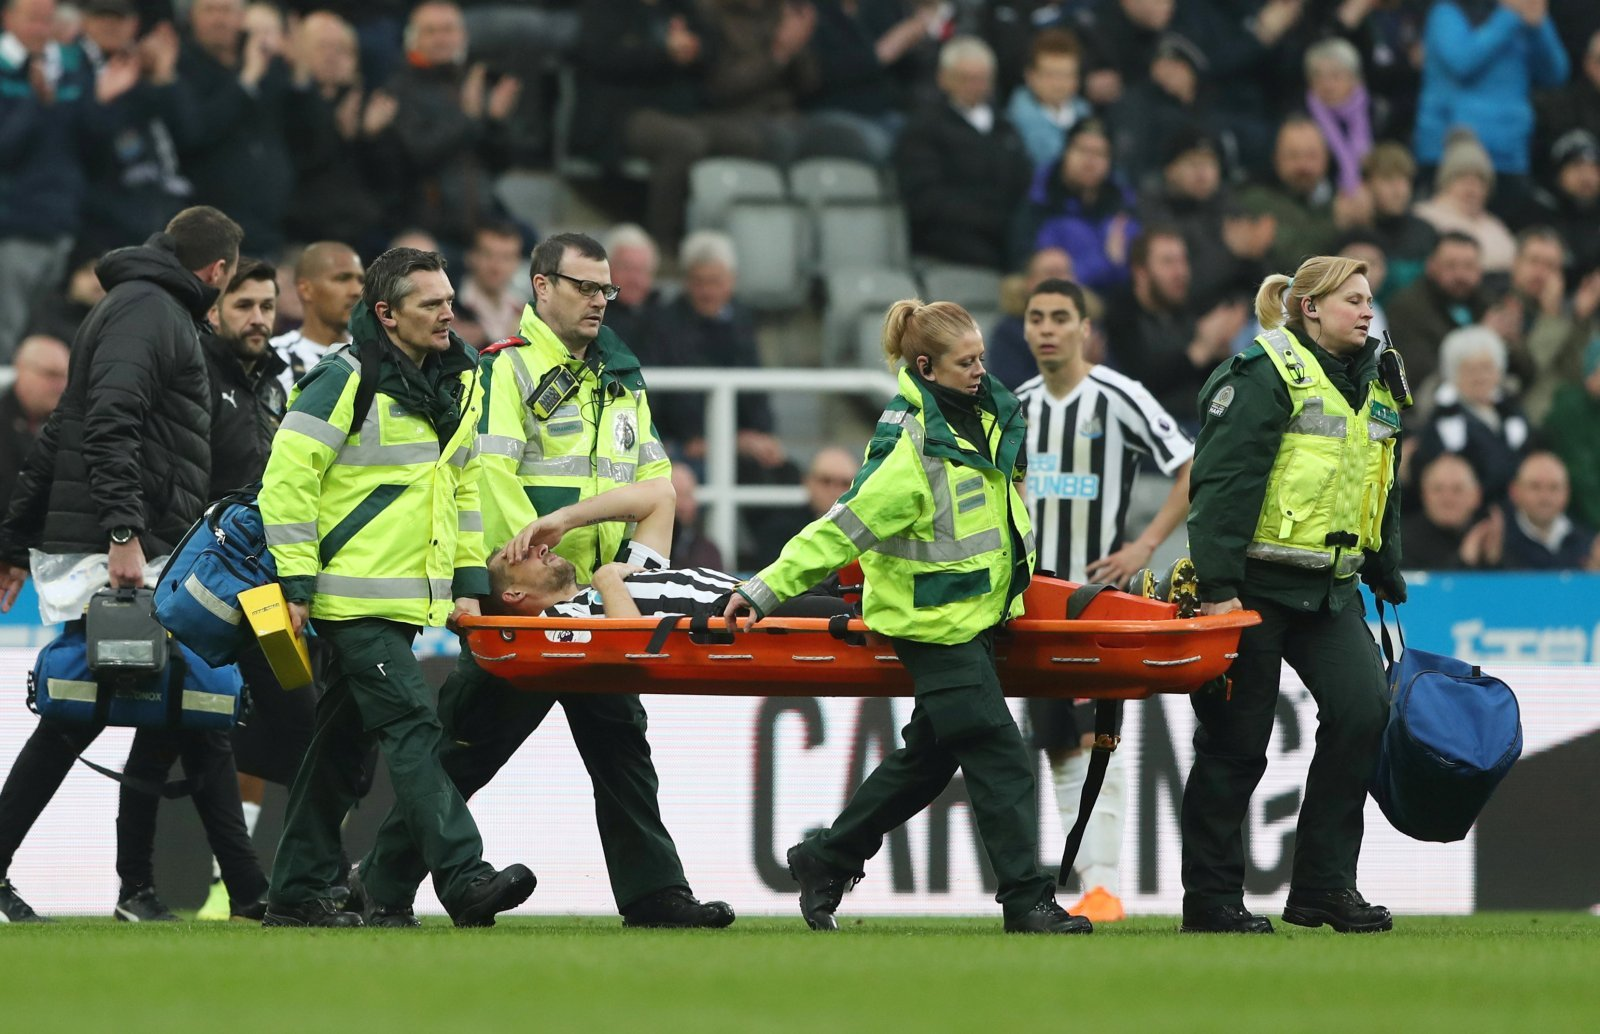 Newcastle United: Fans react to news that Lejeune out for rest of season